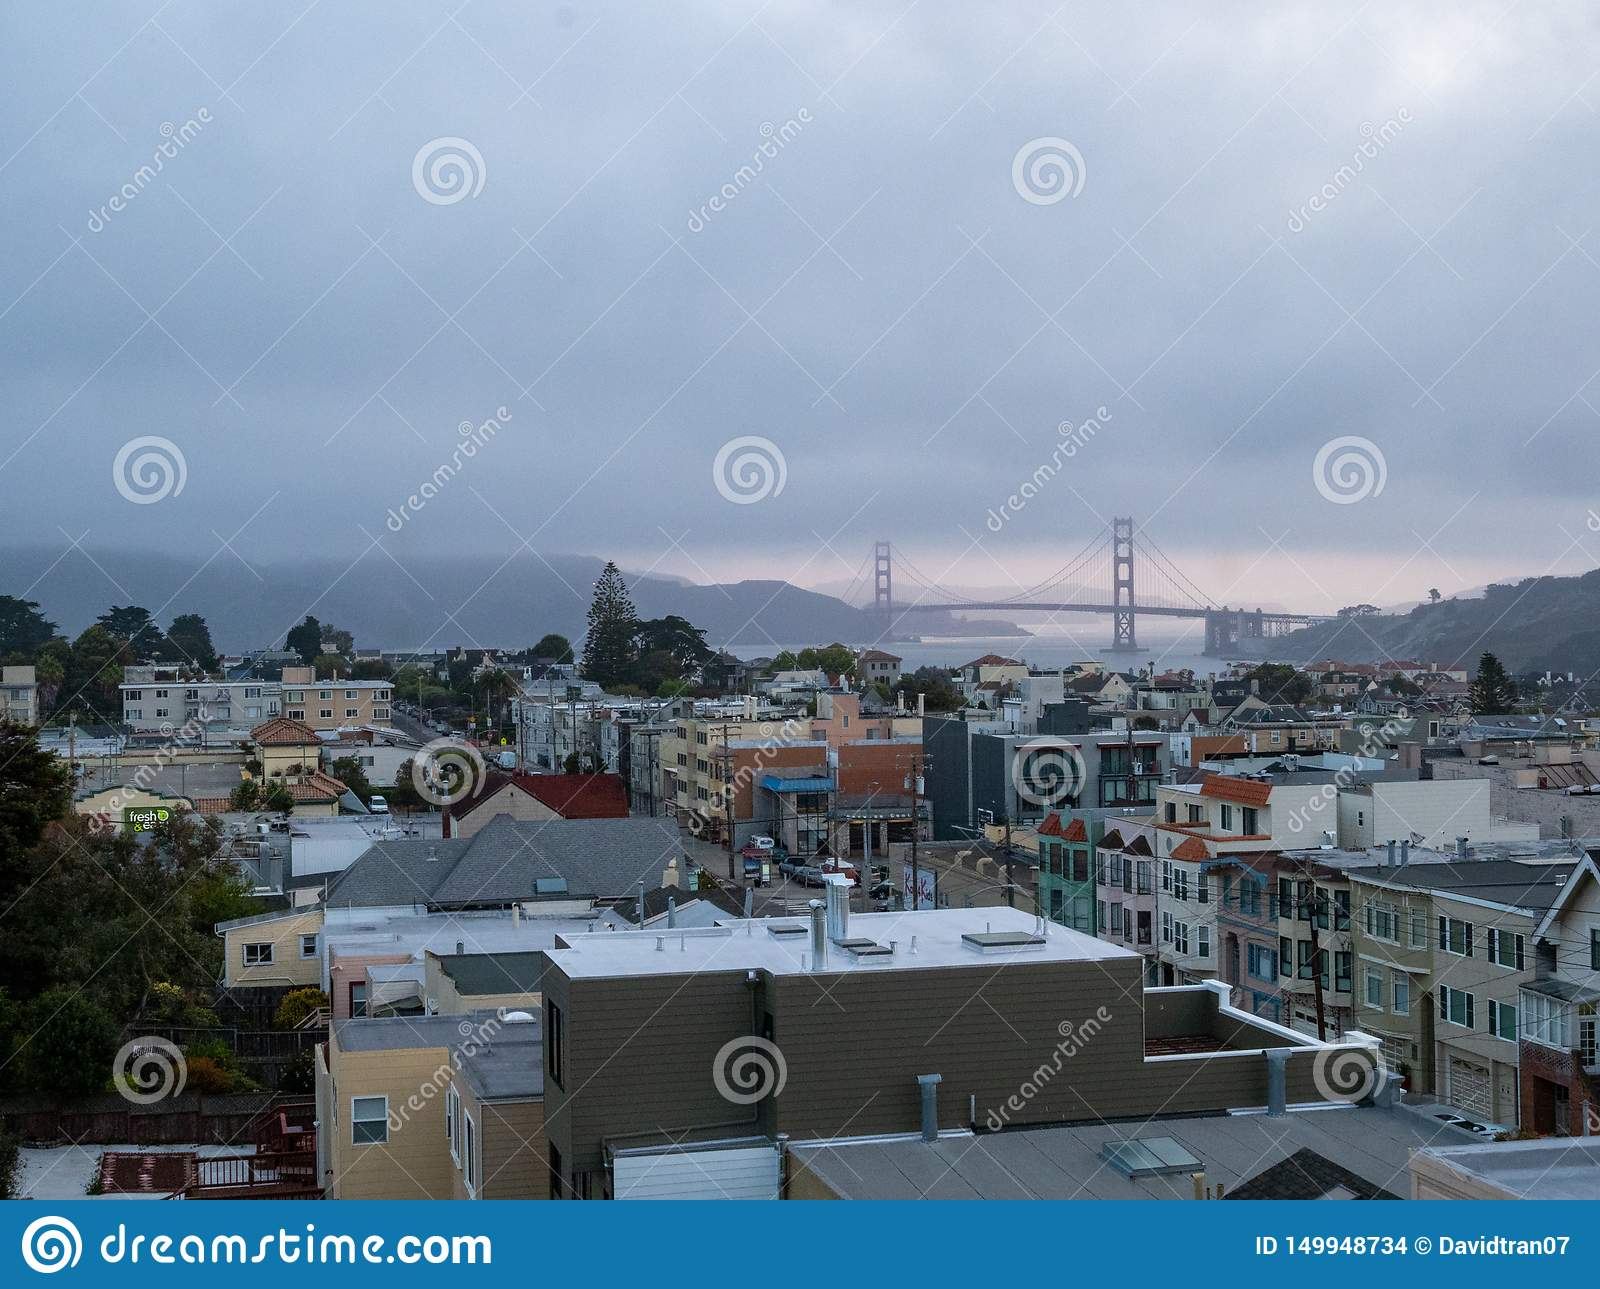 Foggy view of Golden Gate Bridge and Marin Headlands from west side of city